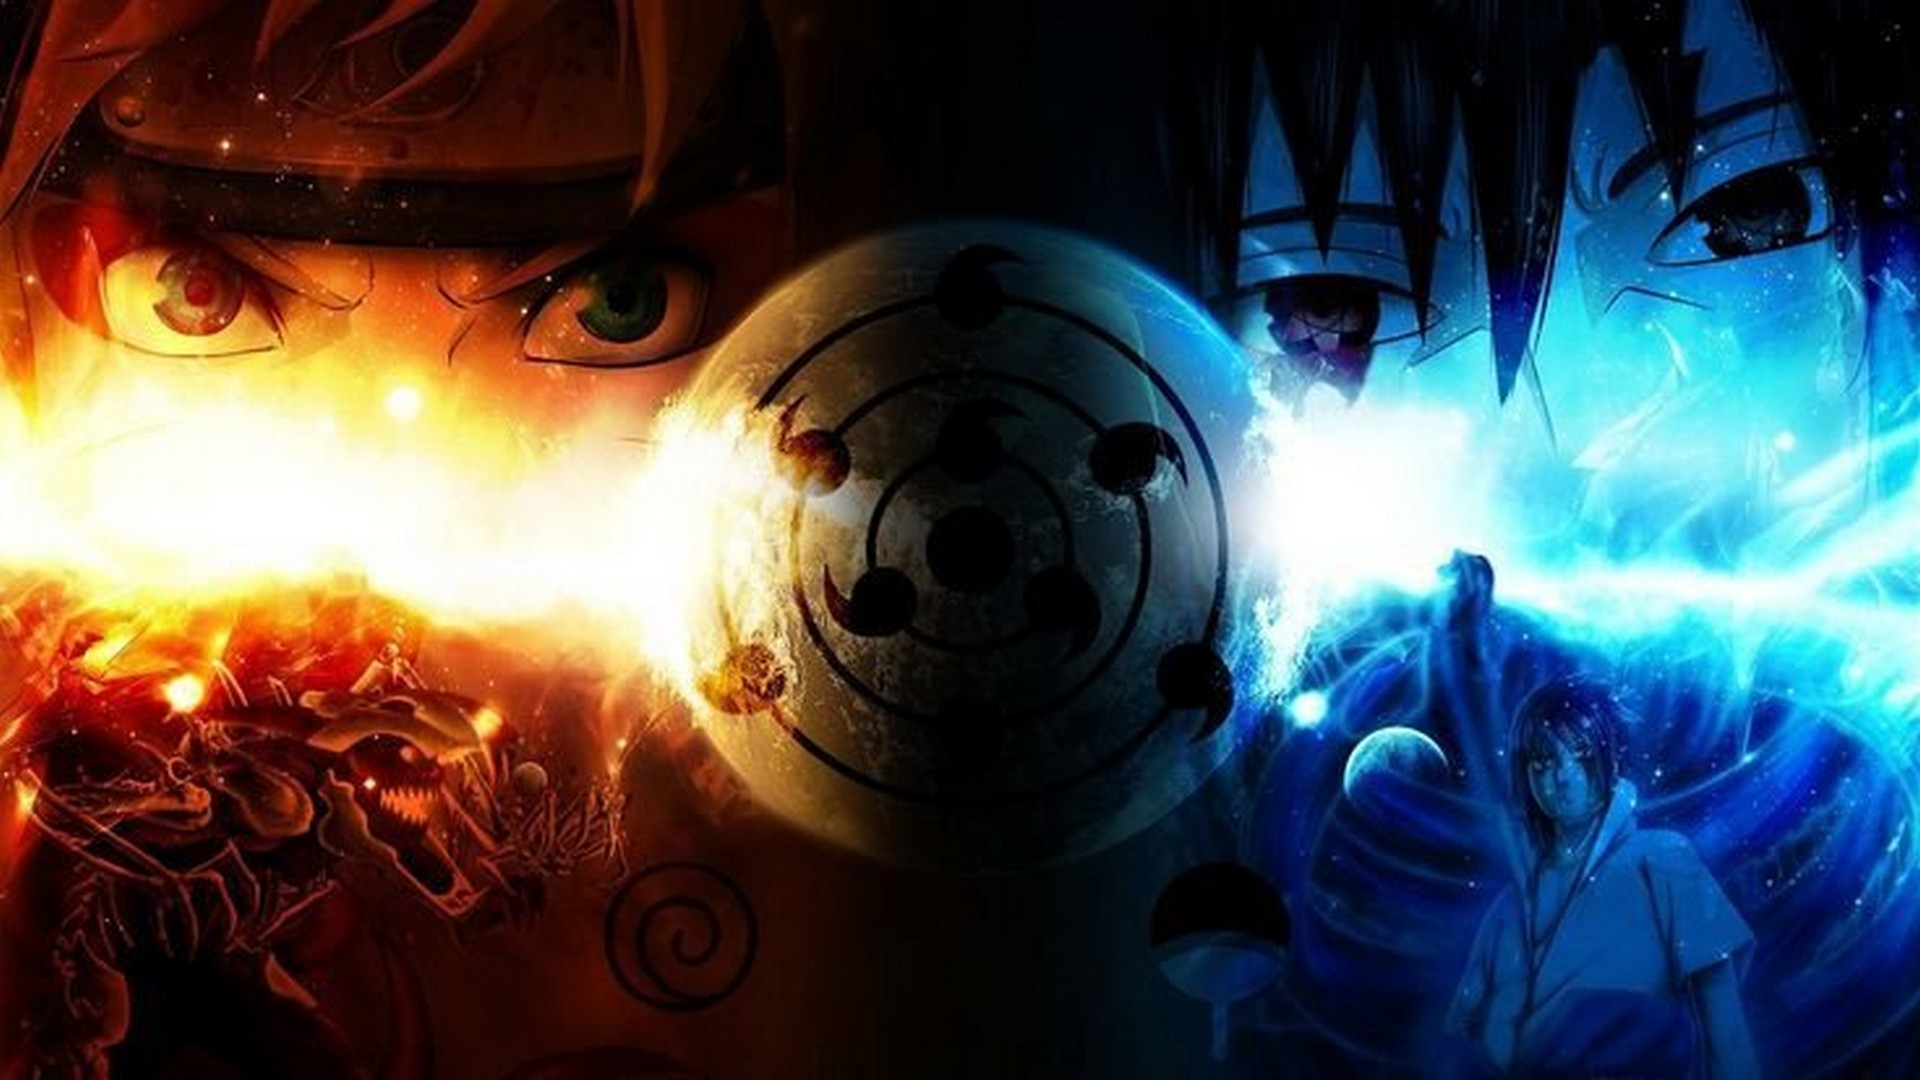 Naruto Wallpaper With high-resolution 1920X1080 pixel. You can use and set as wallpaper for Laptop, computer backgrounds, iPhone lock screen wallpaper and Android